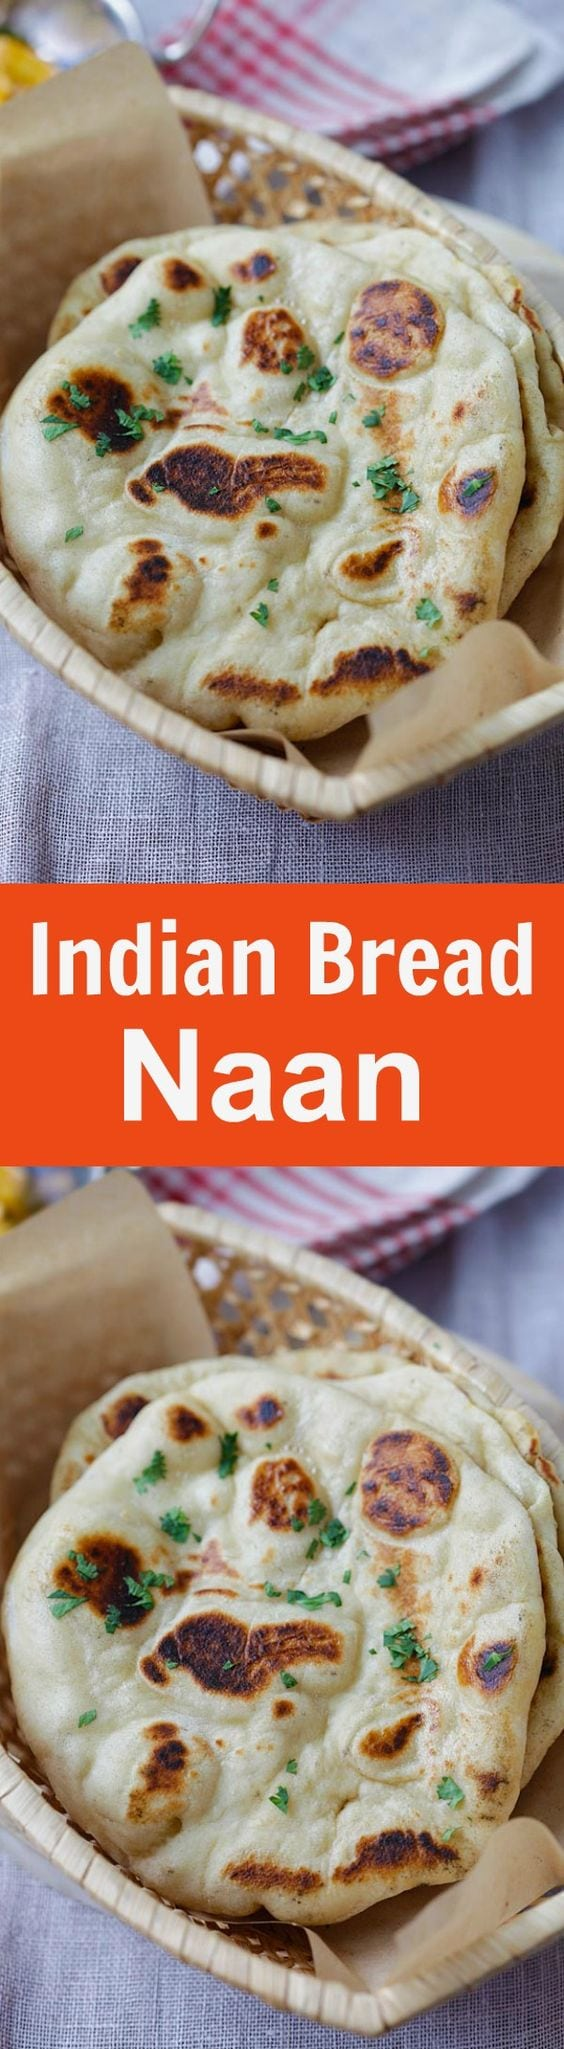 Naan - easy homemade naan recipe using a cast-iron skillet. Soft, puffy, with beautiful brown blisters just like Indian restaurants | rasamalaysia.com